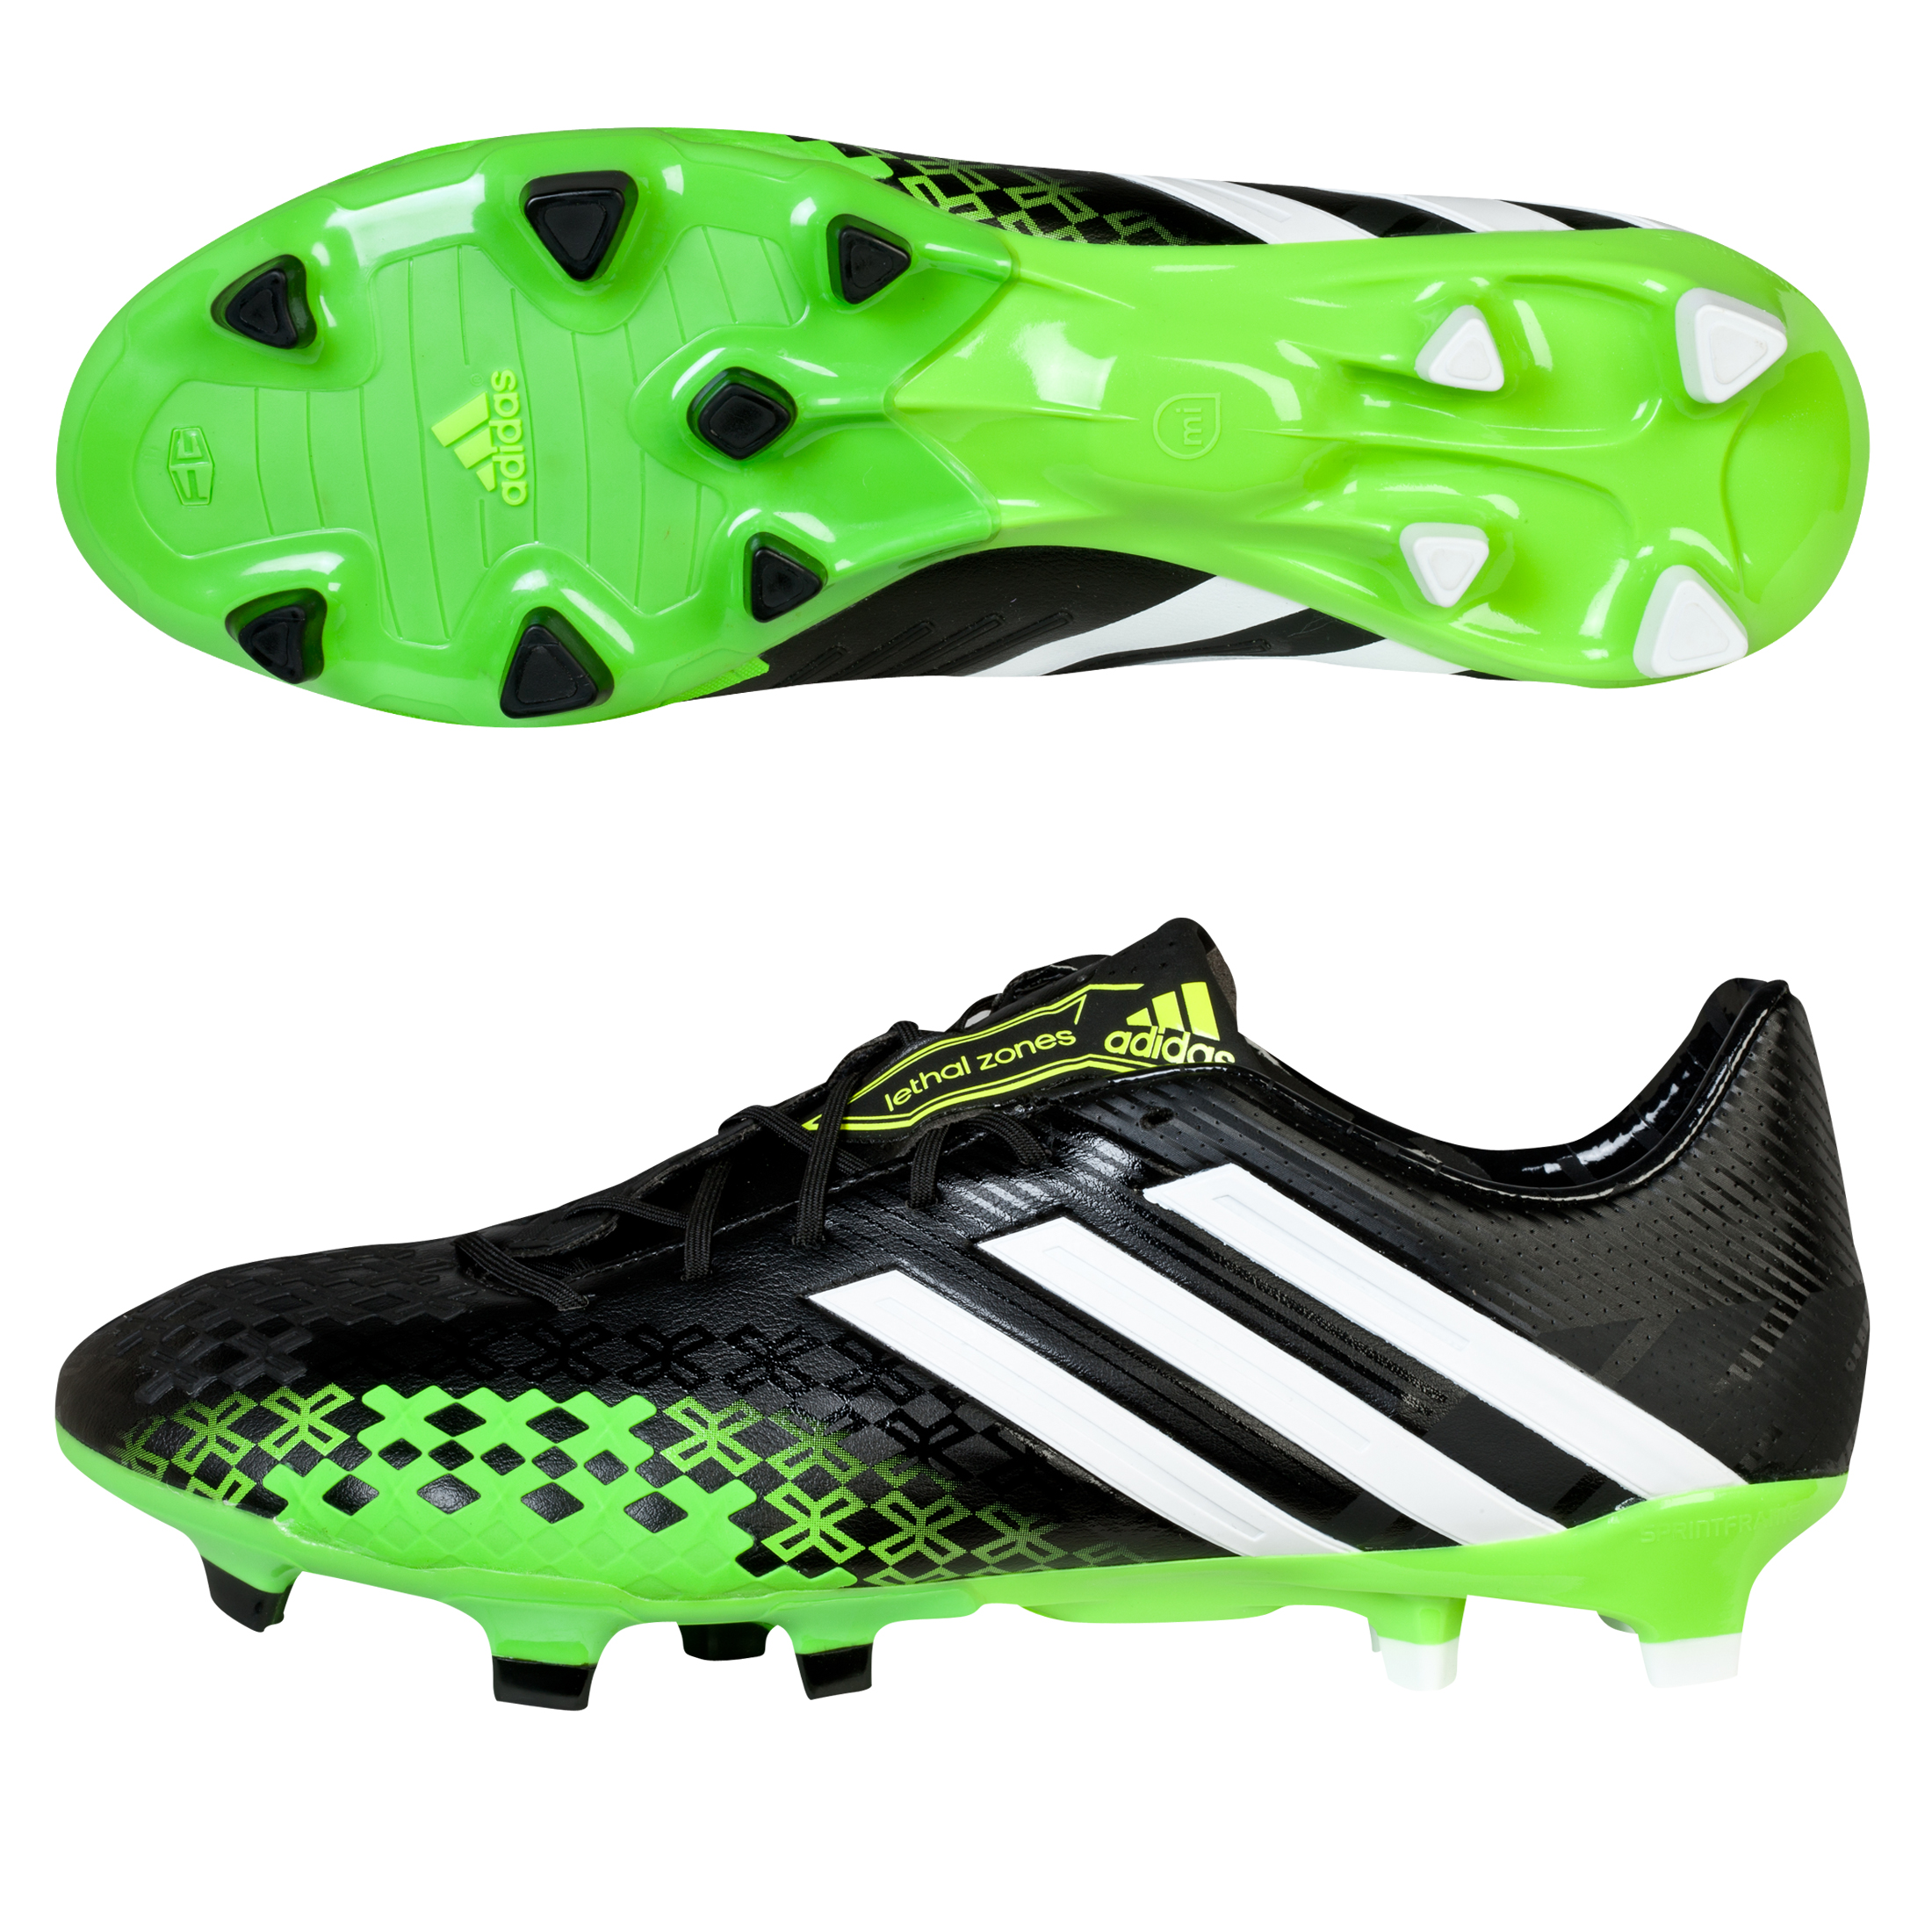 Adidas Predator LZ TRX Firm Ground Football Boots Black